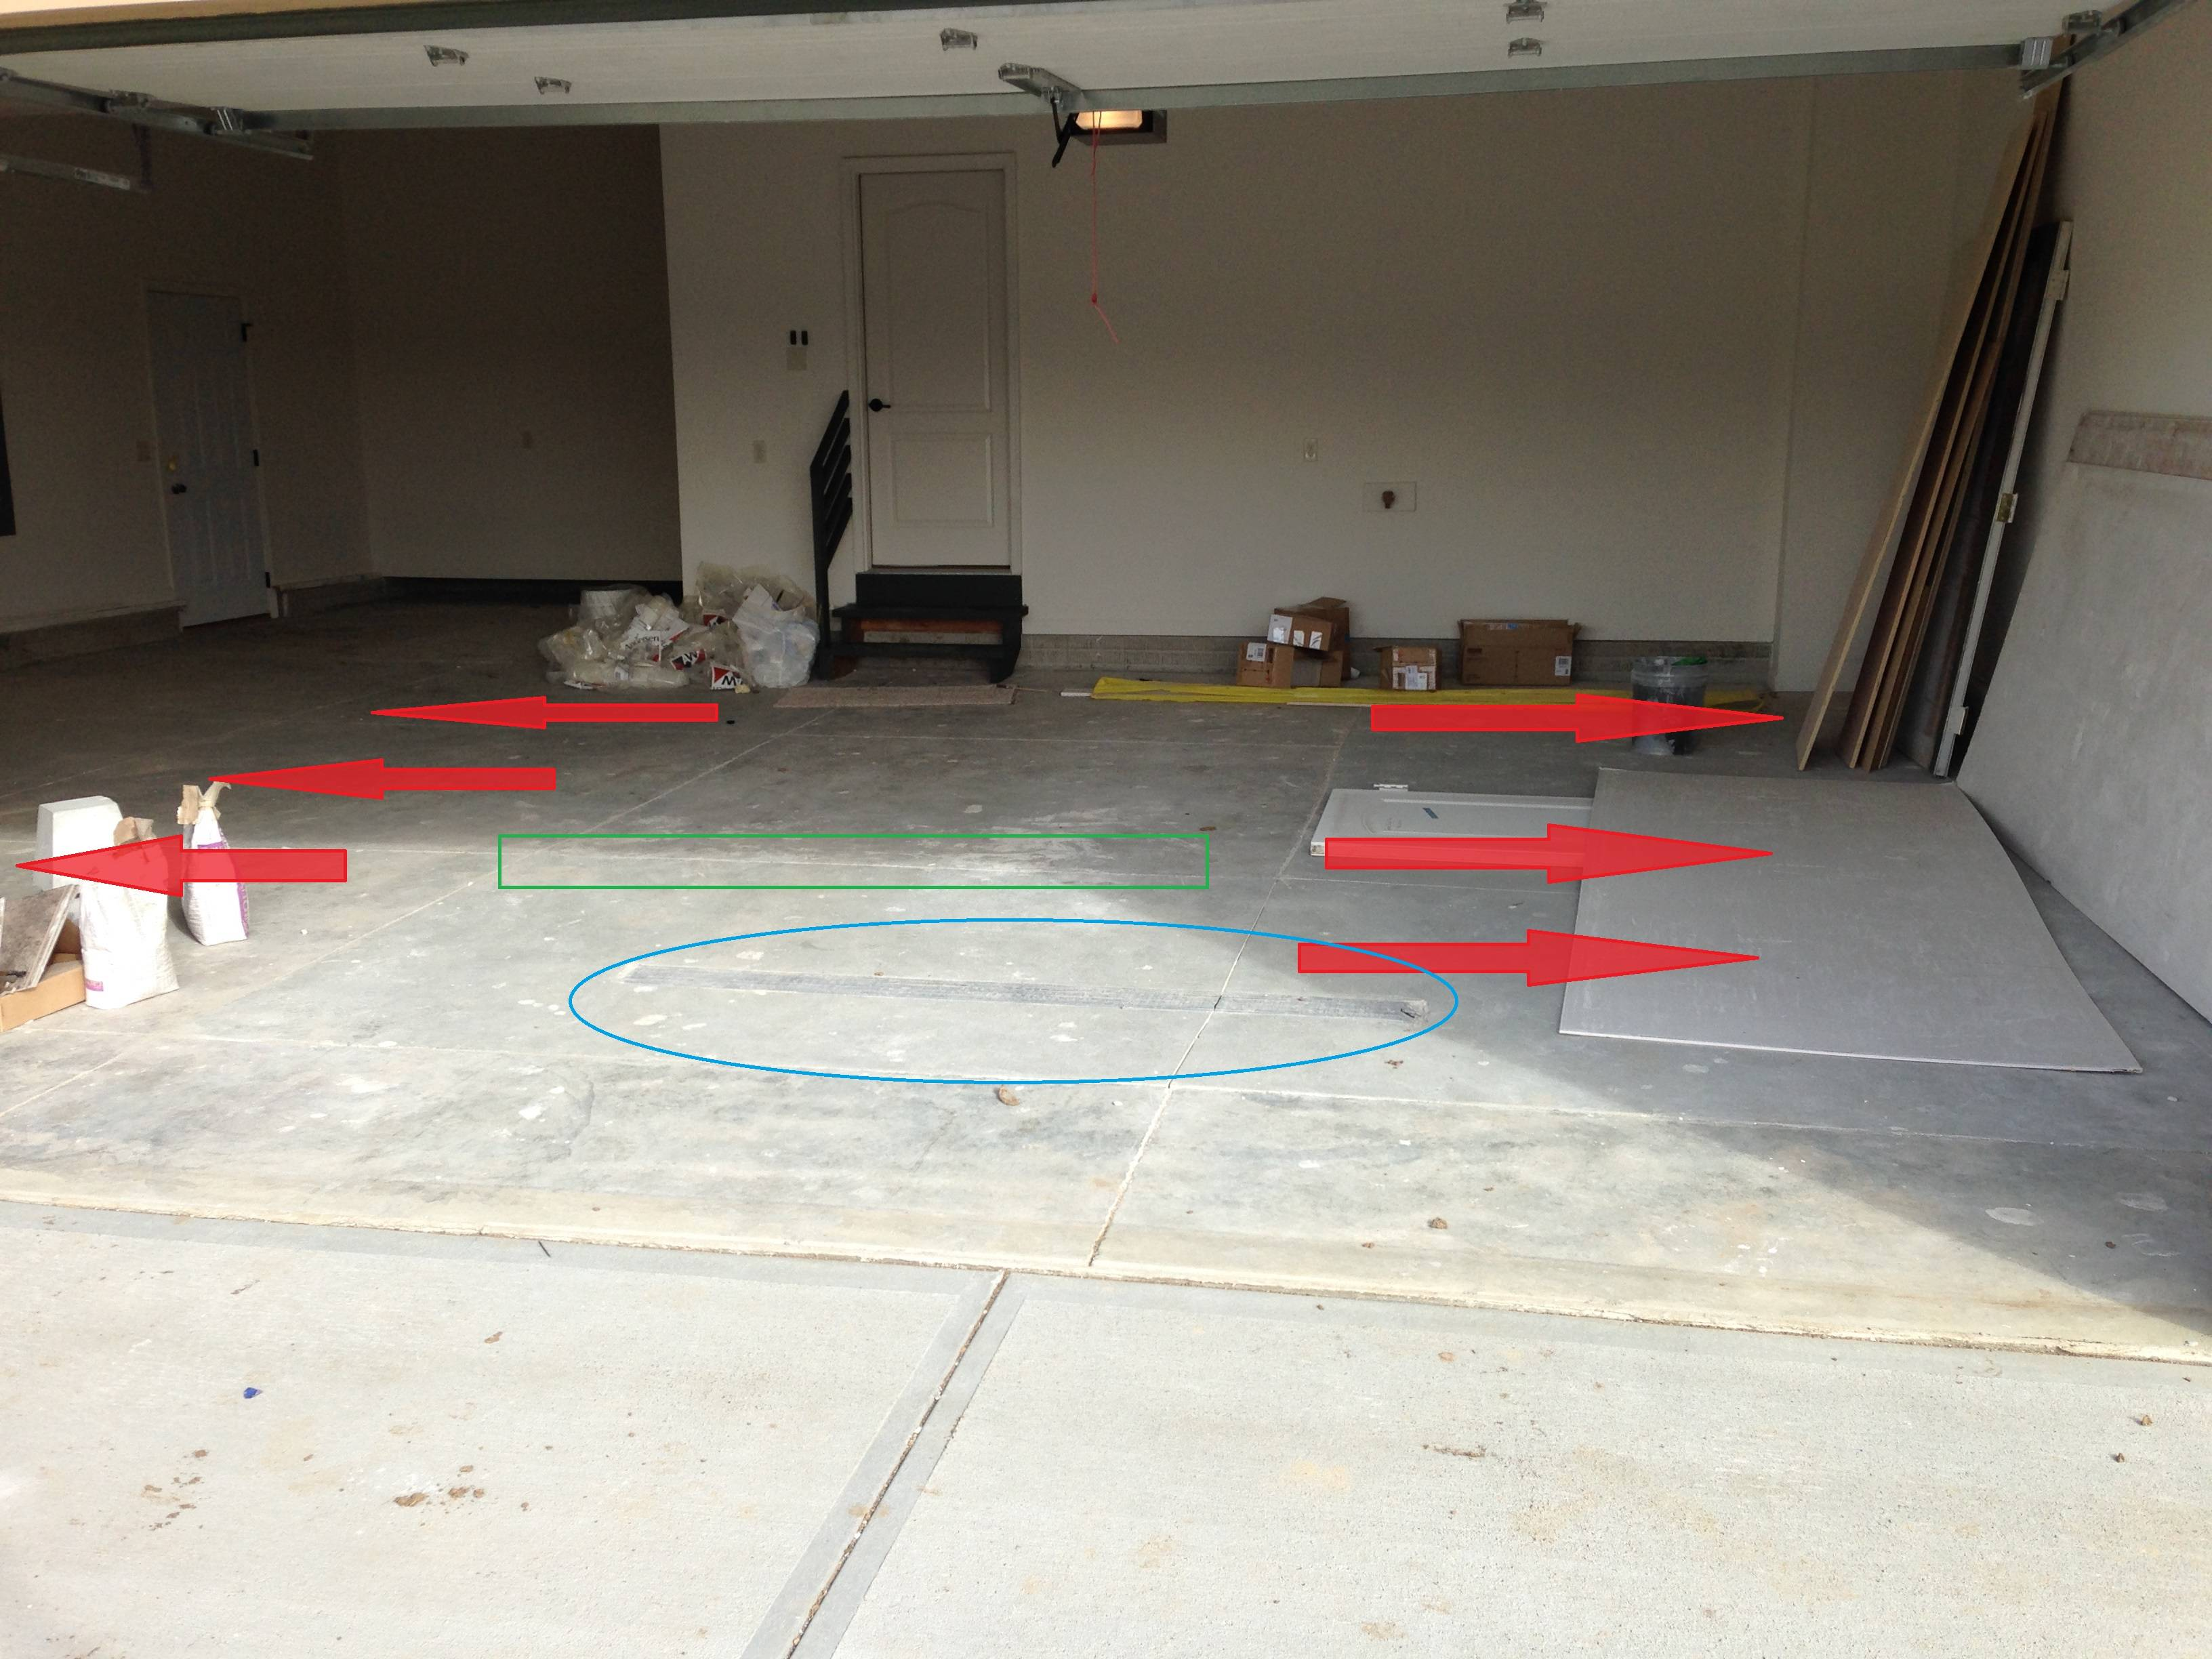 Garage Floor Doesn't Slope to Drain on New Construction